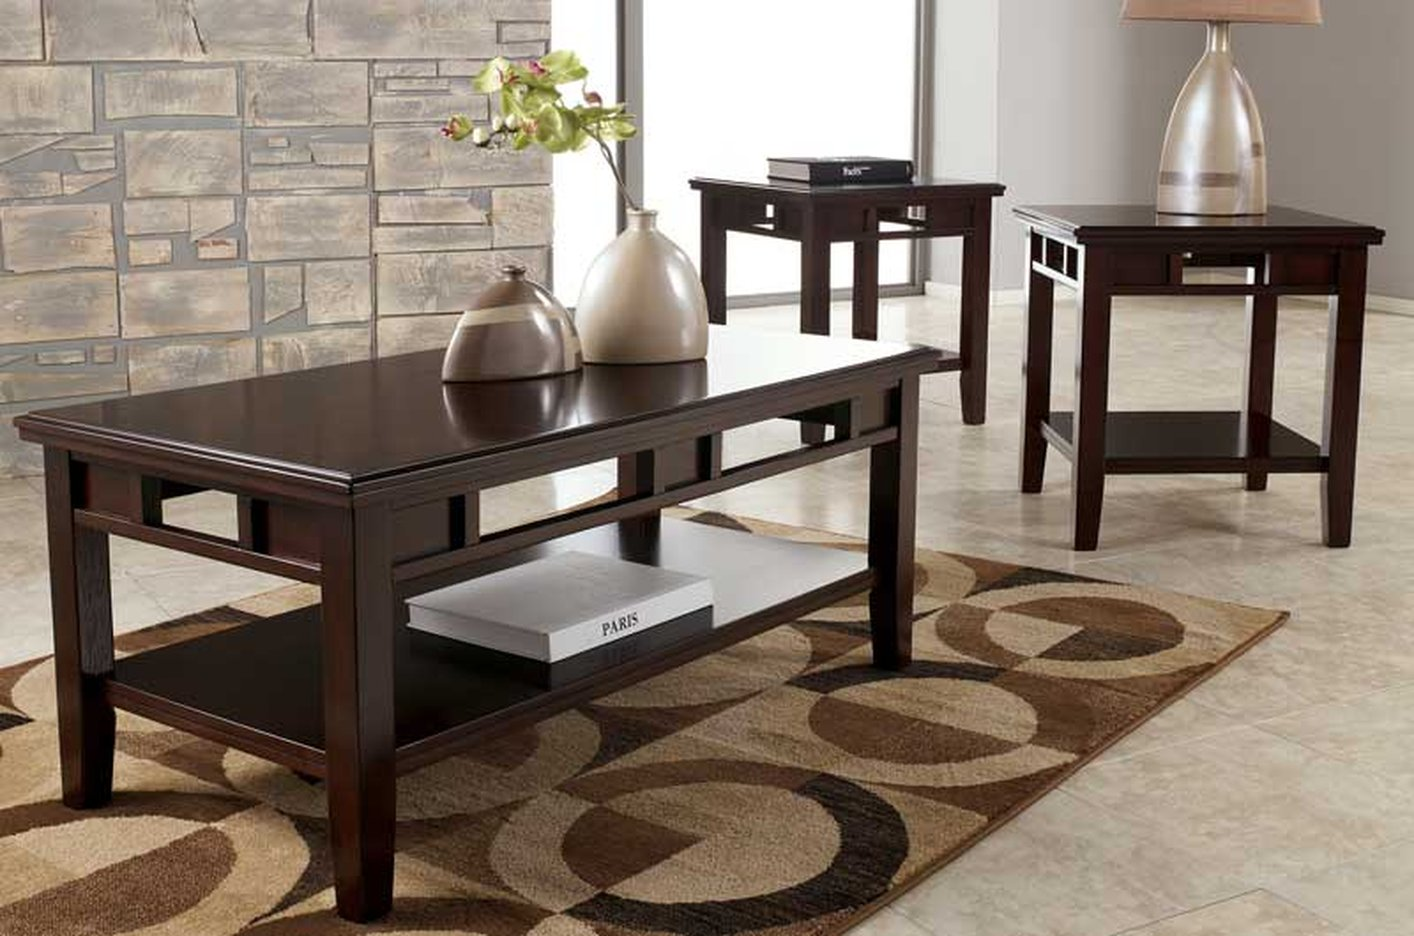 coffee tables ideas modern table and end set logan description ashley furniture features statusque elegance books decorative items dark wood gray distressed fire pit cover ethan